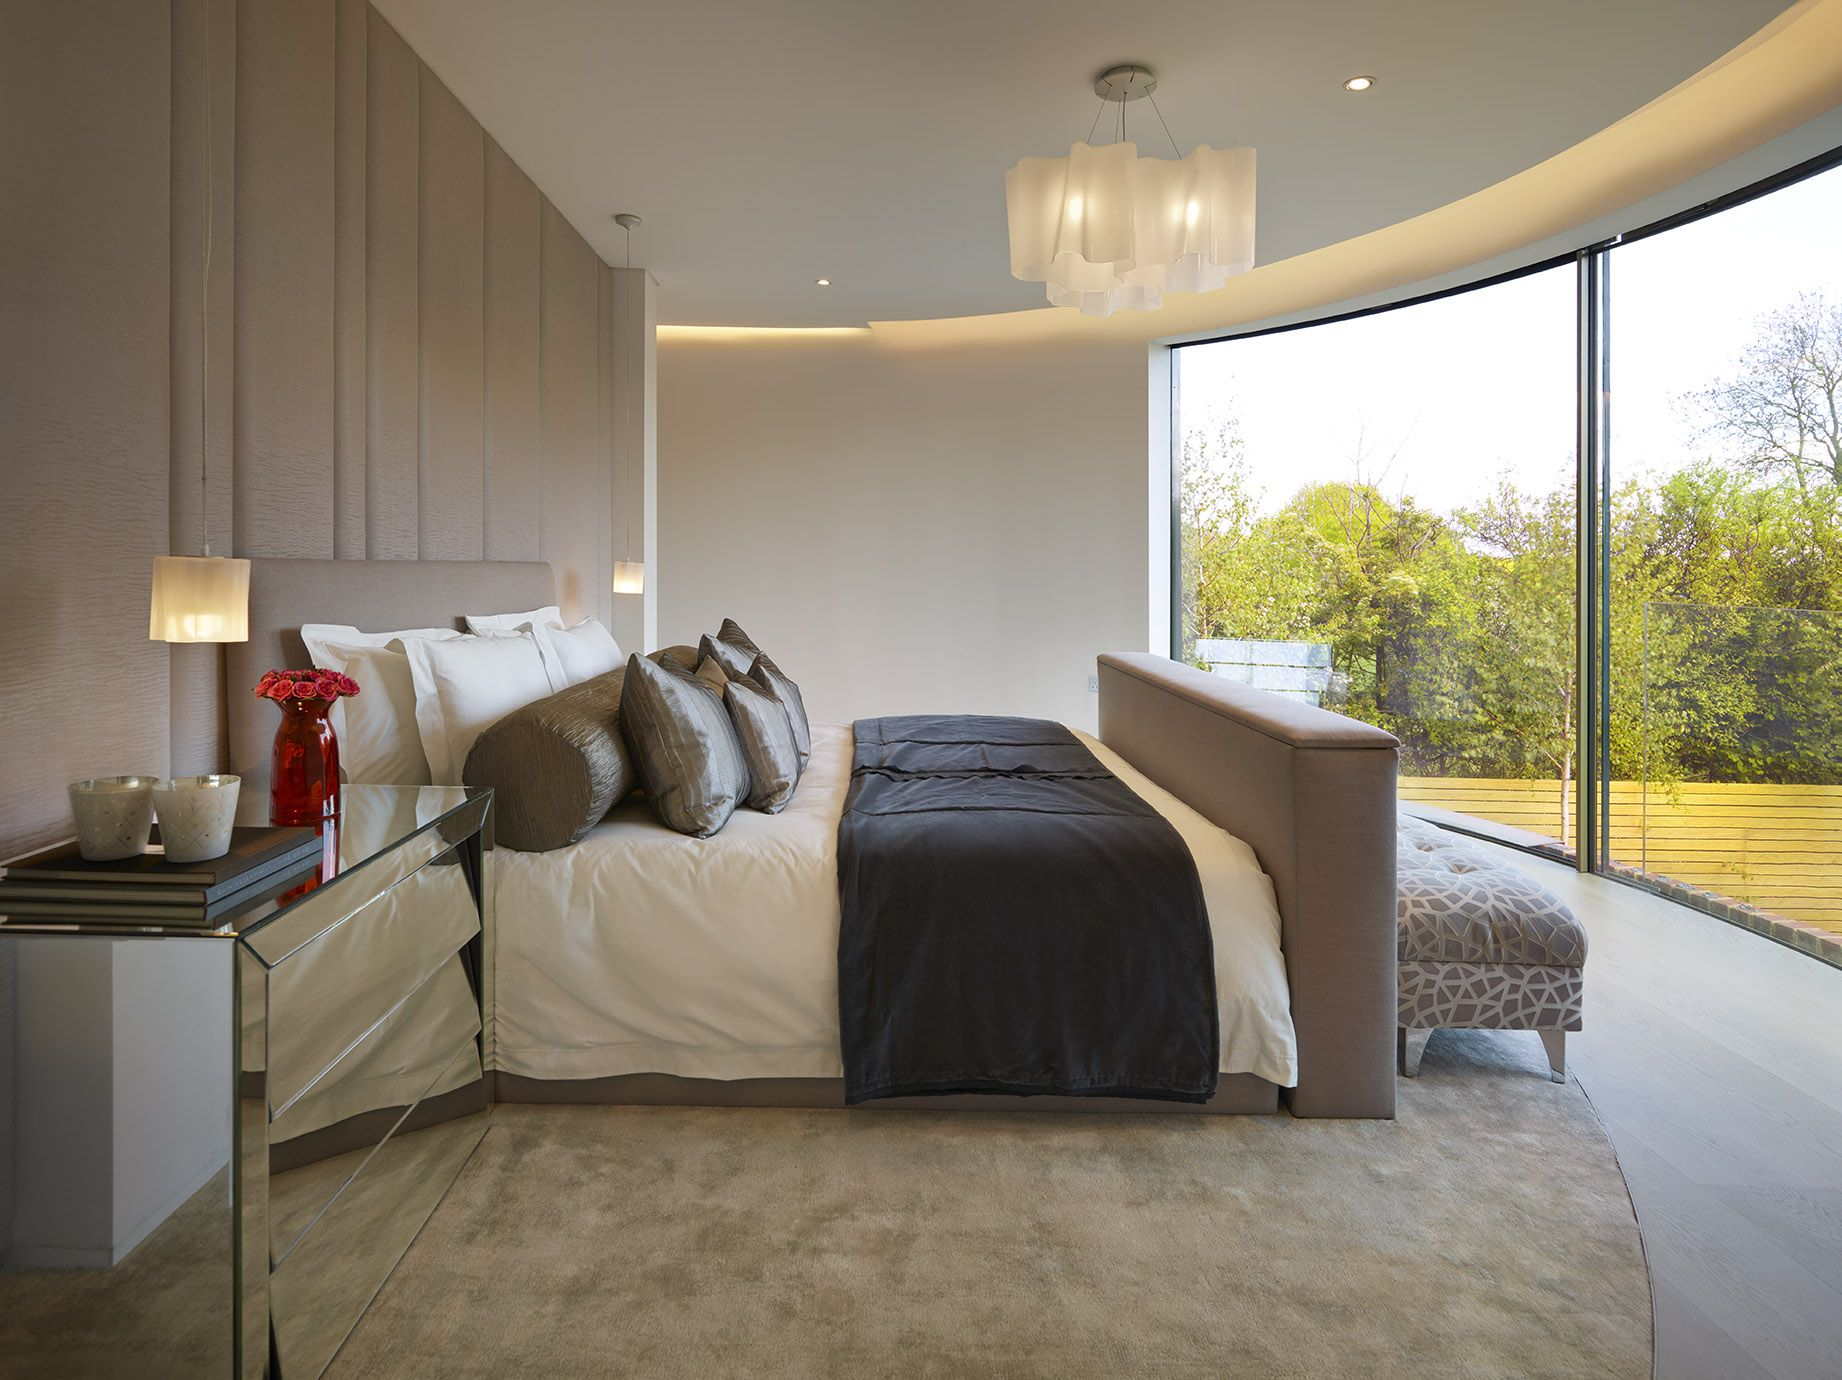 Master bedroom in the kiln with curved glass wall